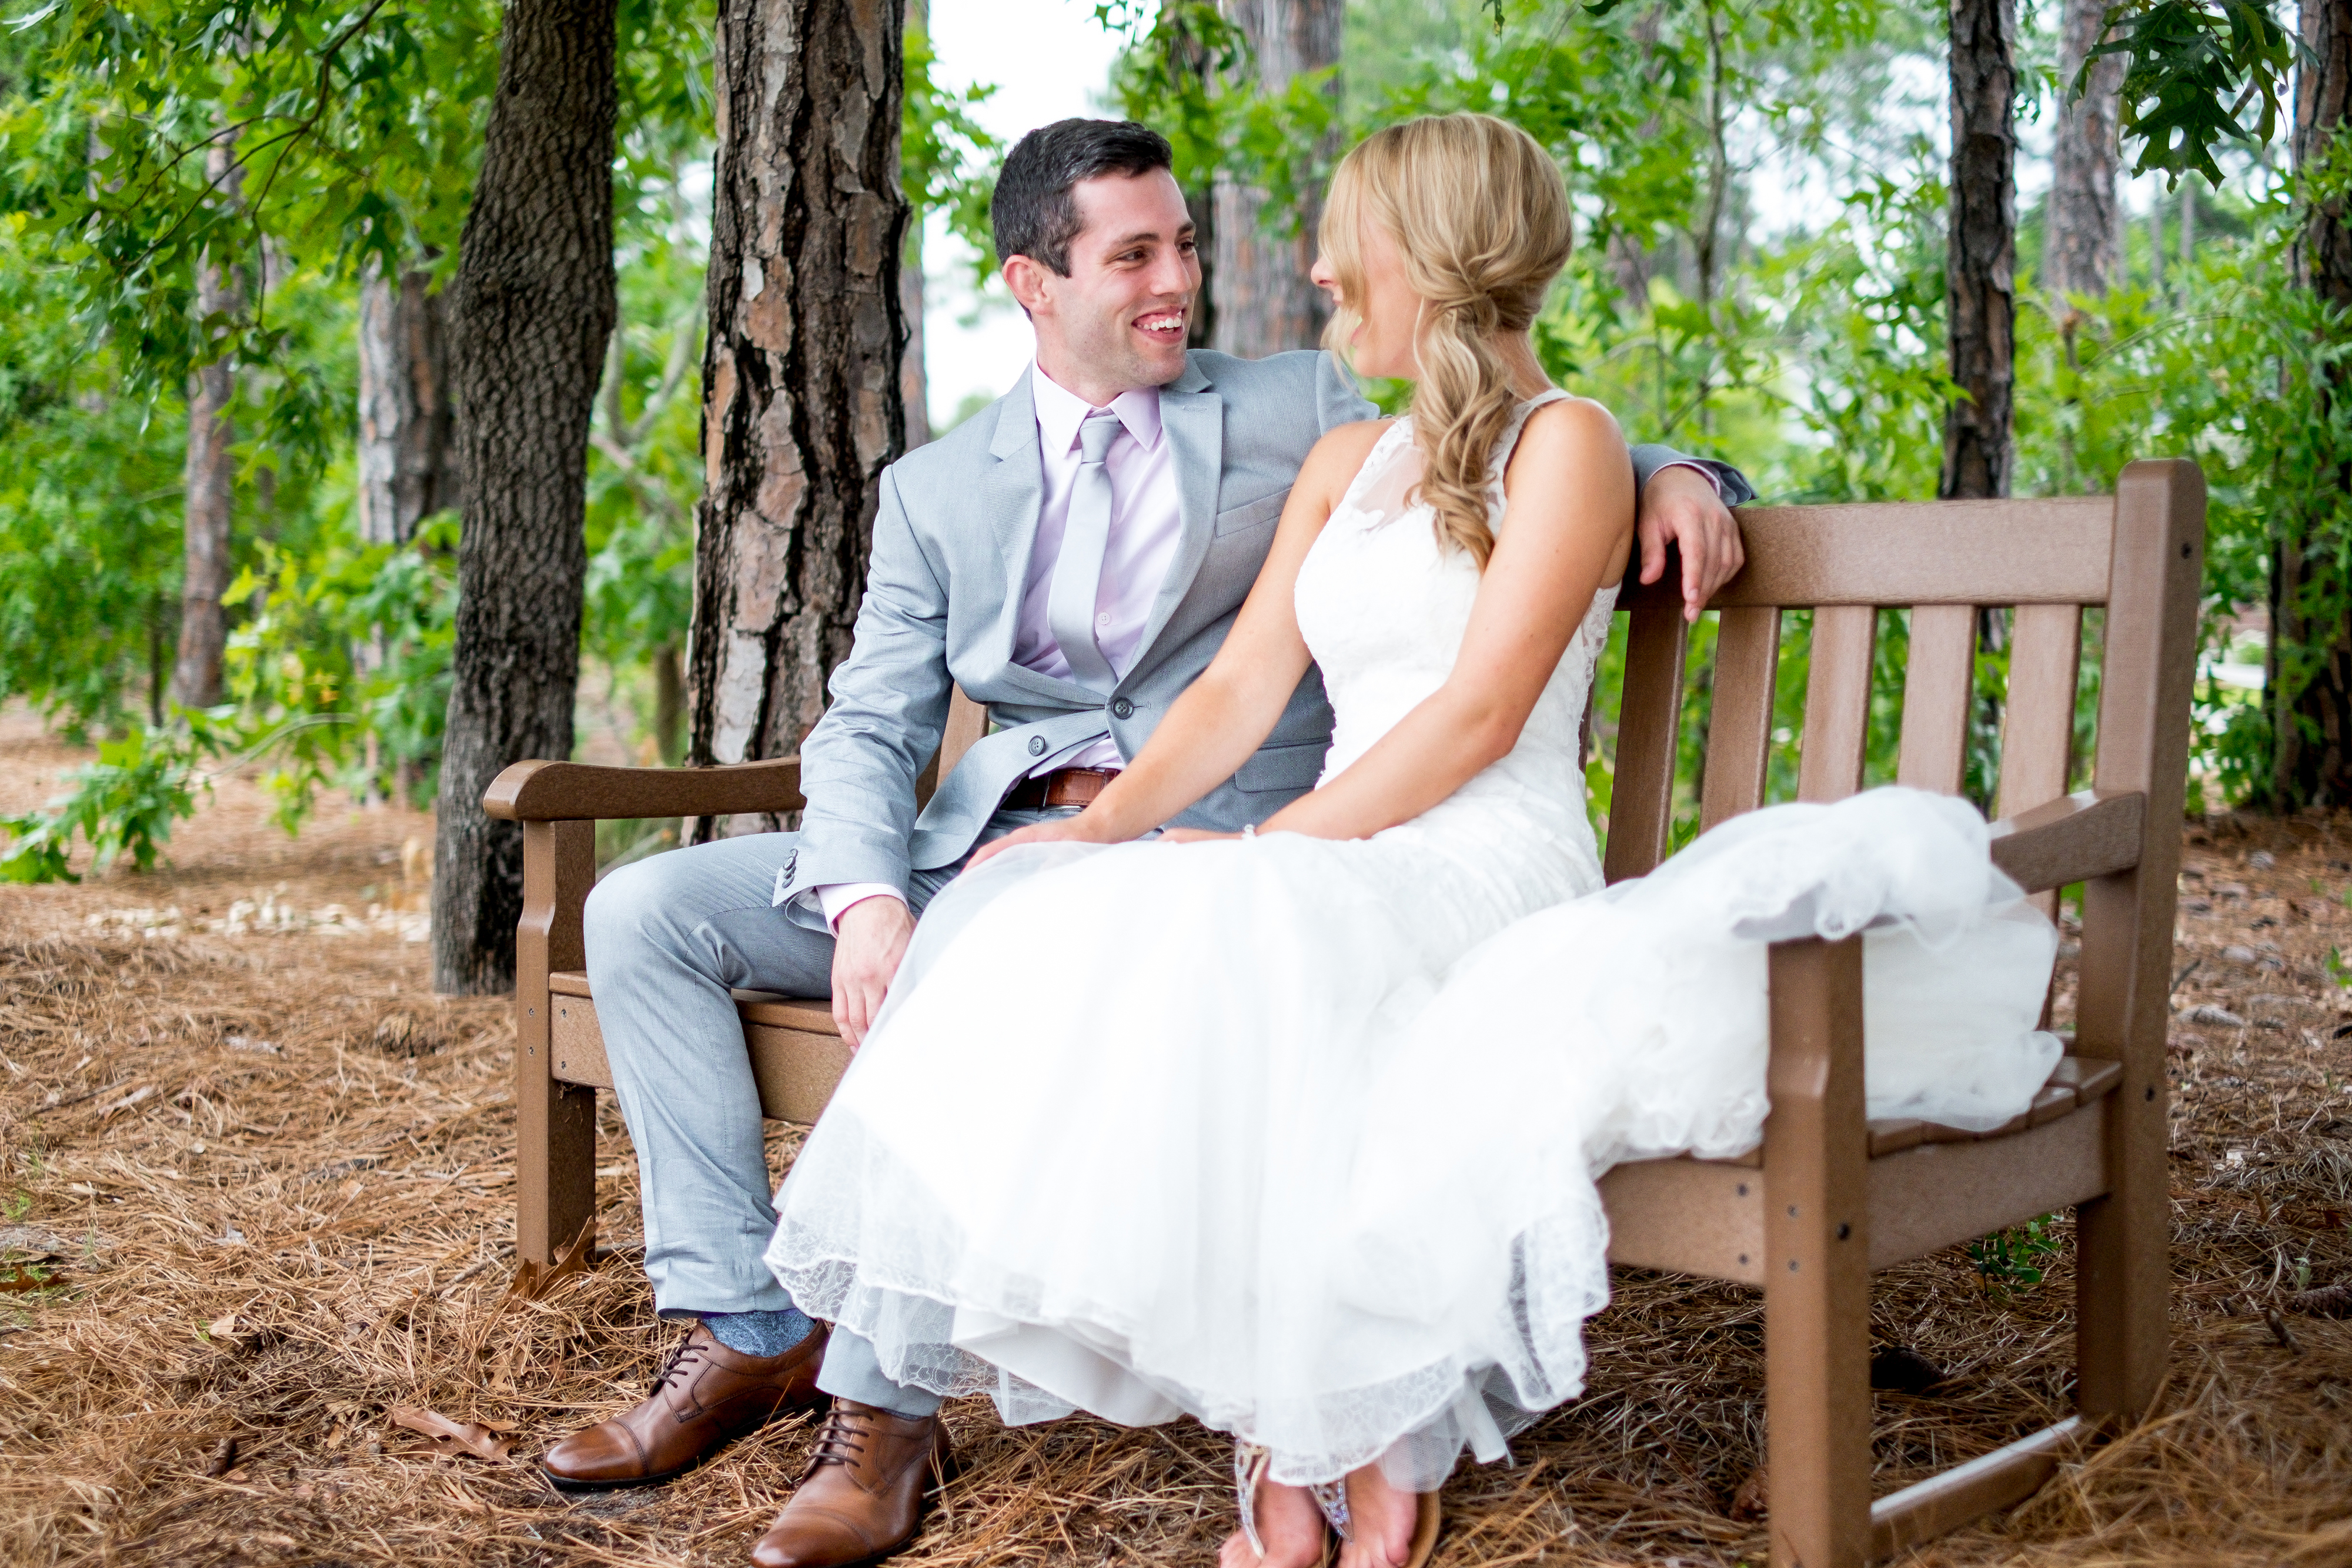 A bride and groom share a quiet moment on a bench, before their wedding. Photo taken by Pait Photography, at a wedding at St. James Plantation, in St. James, NC.